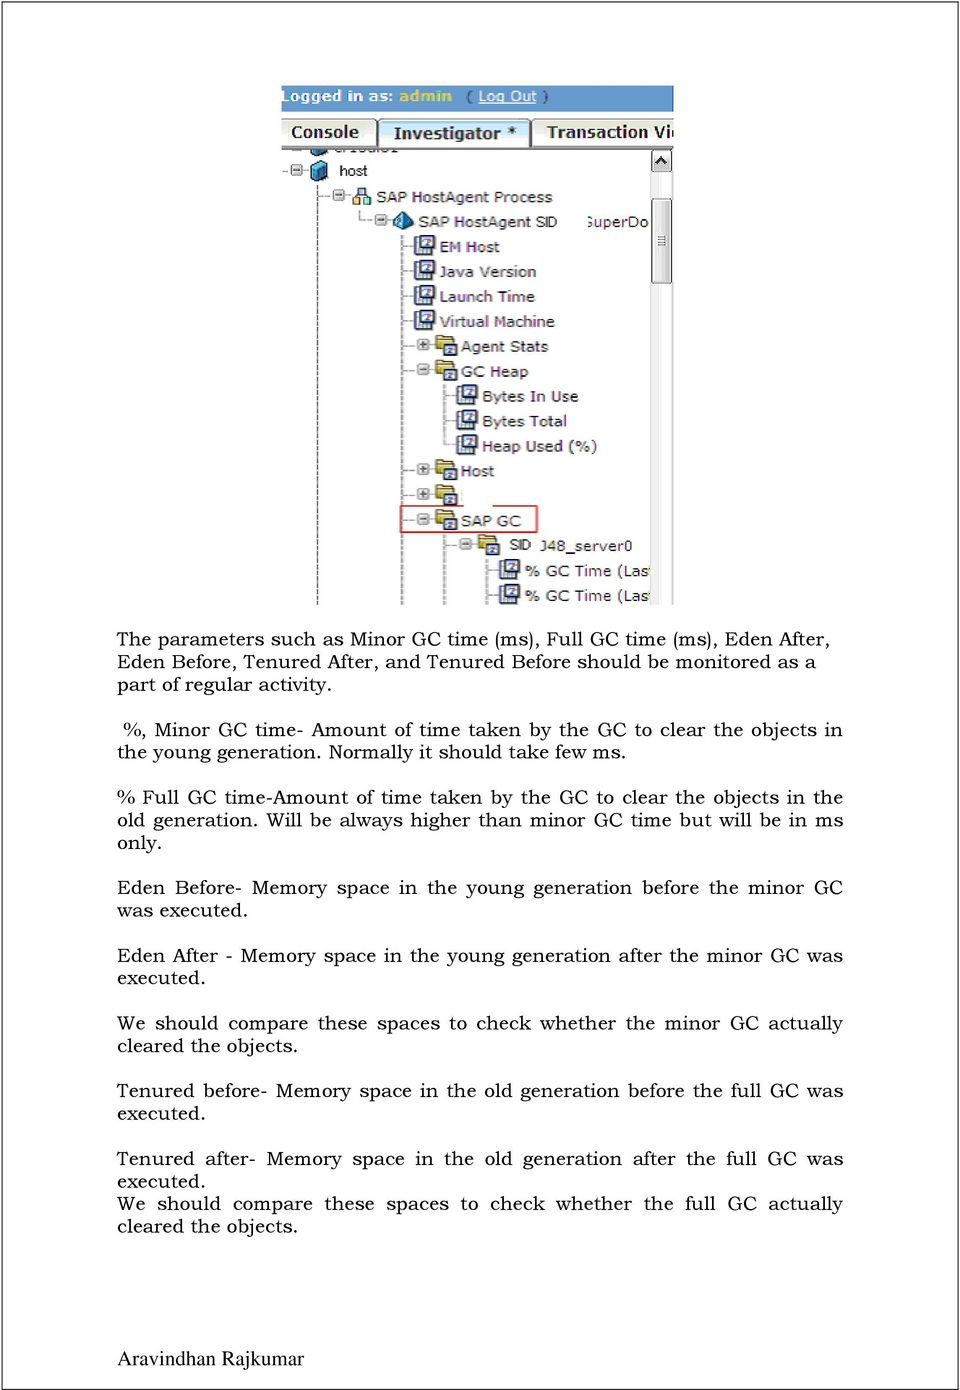 J2EE-JAVA SYSTEM MONITORING (Wily introscope) - PDF